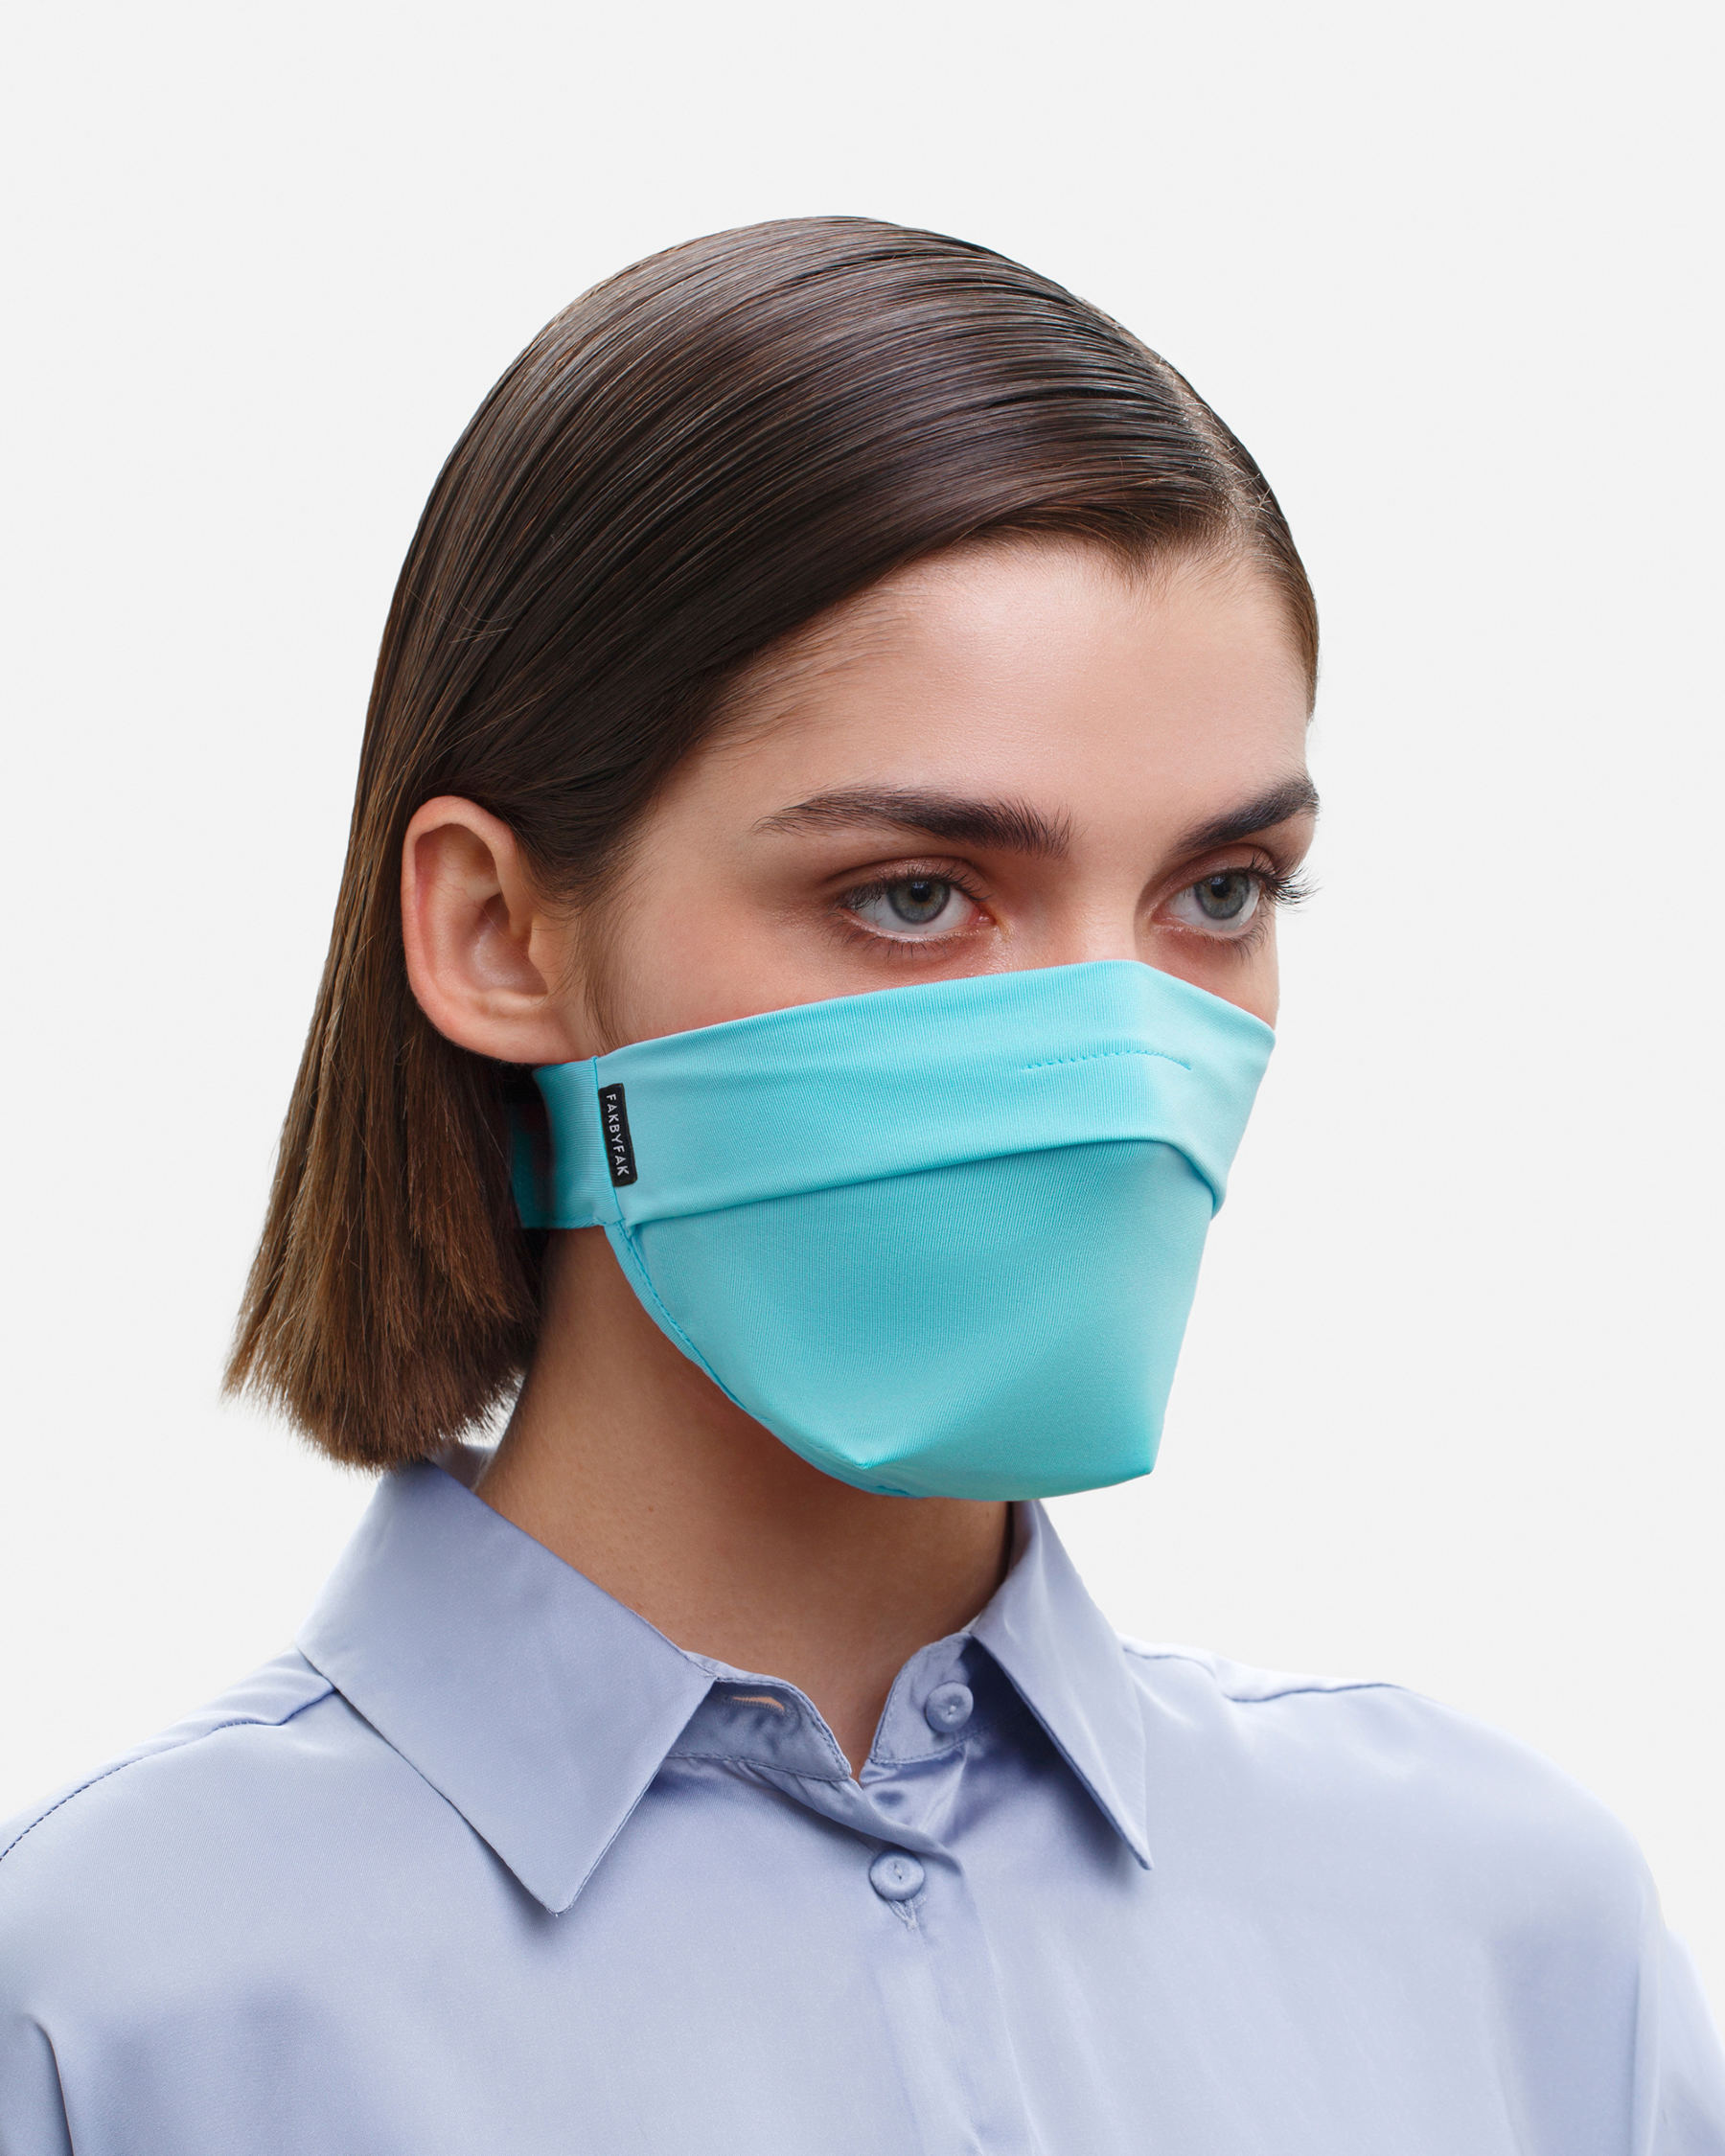 FAKBYFAK  The Vega. Ear Strap-Free High-End Protective Antibacterial (ATB-UV+) Face Mask. Mint Code: FBF-42101-07